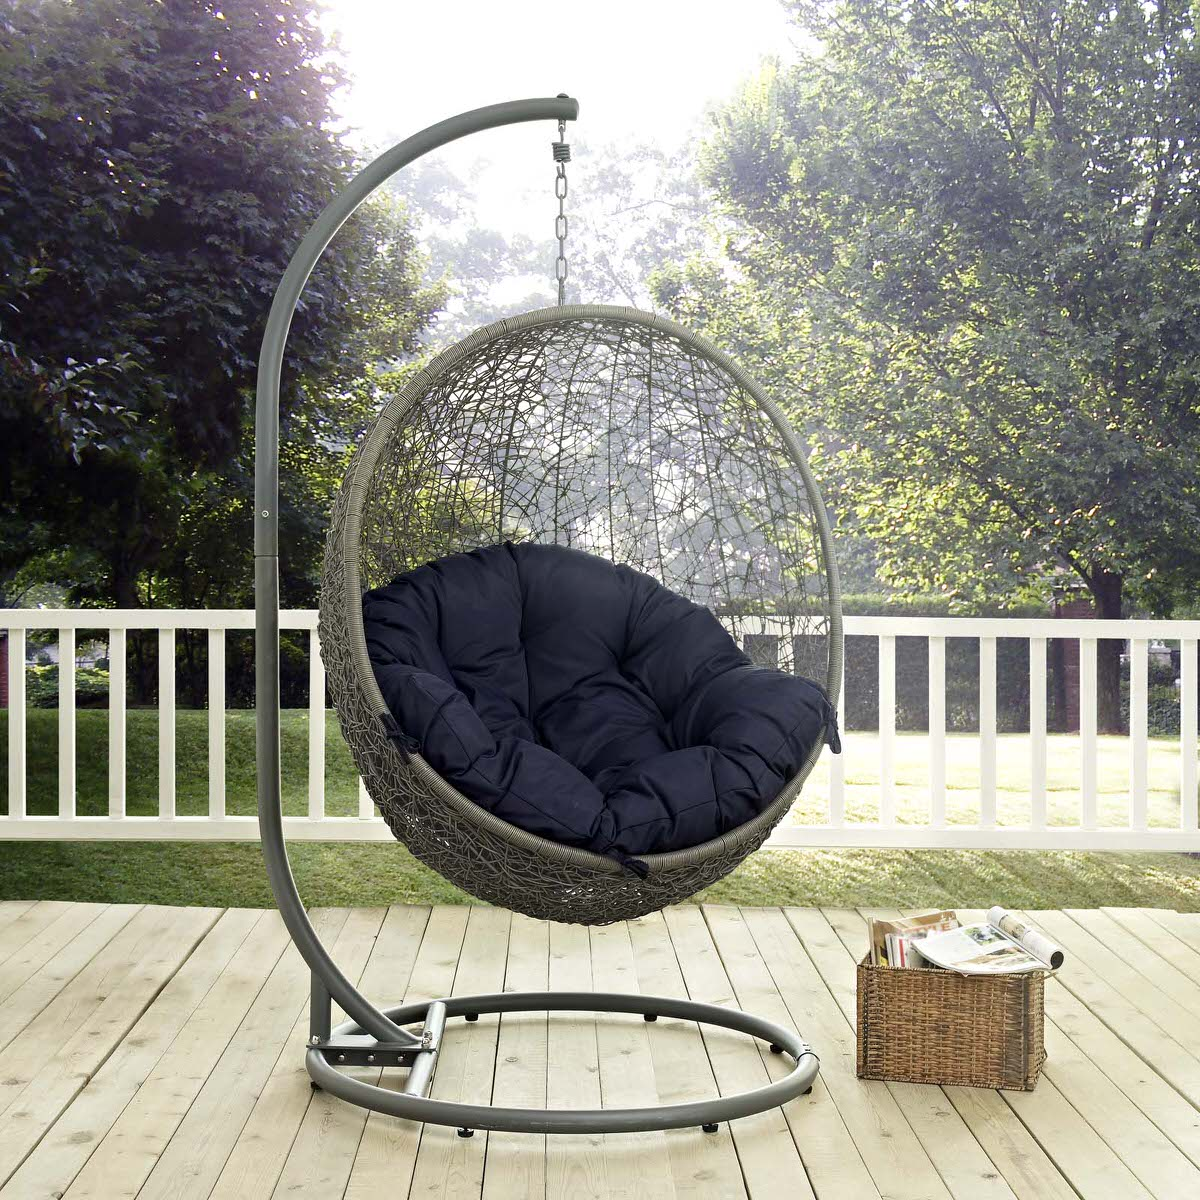 hide outdoor patio swing chair with stand gray navy by modern living - Patio Swing Chair